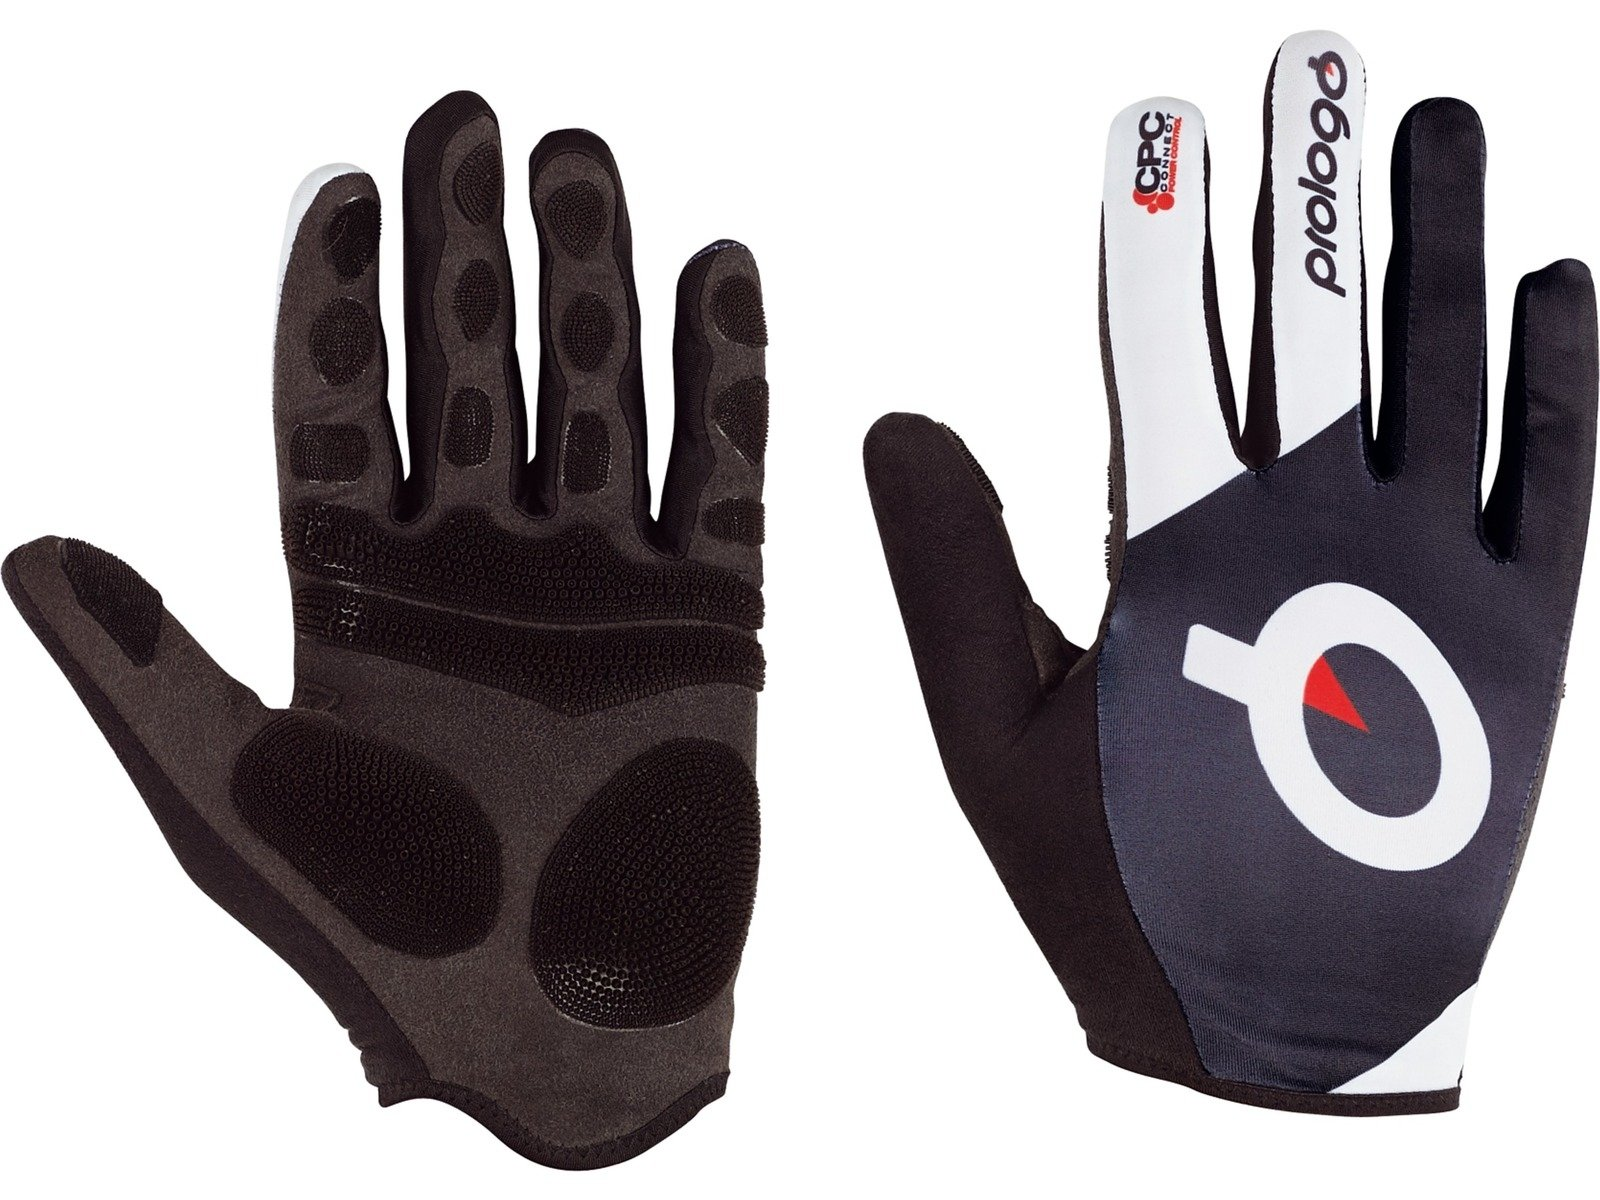 Prologo CPC Cycling Glove Full Finger: Black and White, XL by Prologo (Image #1)